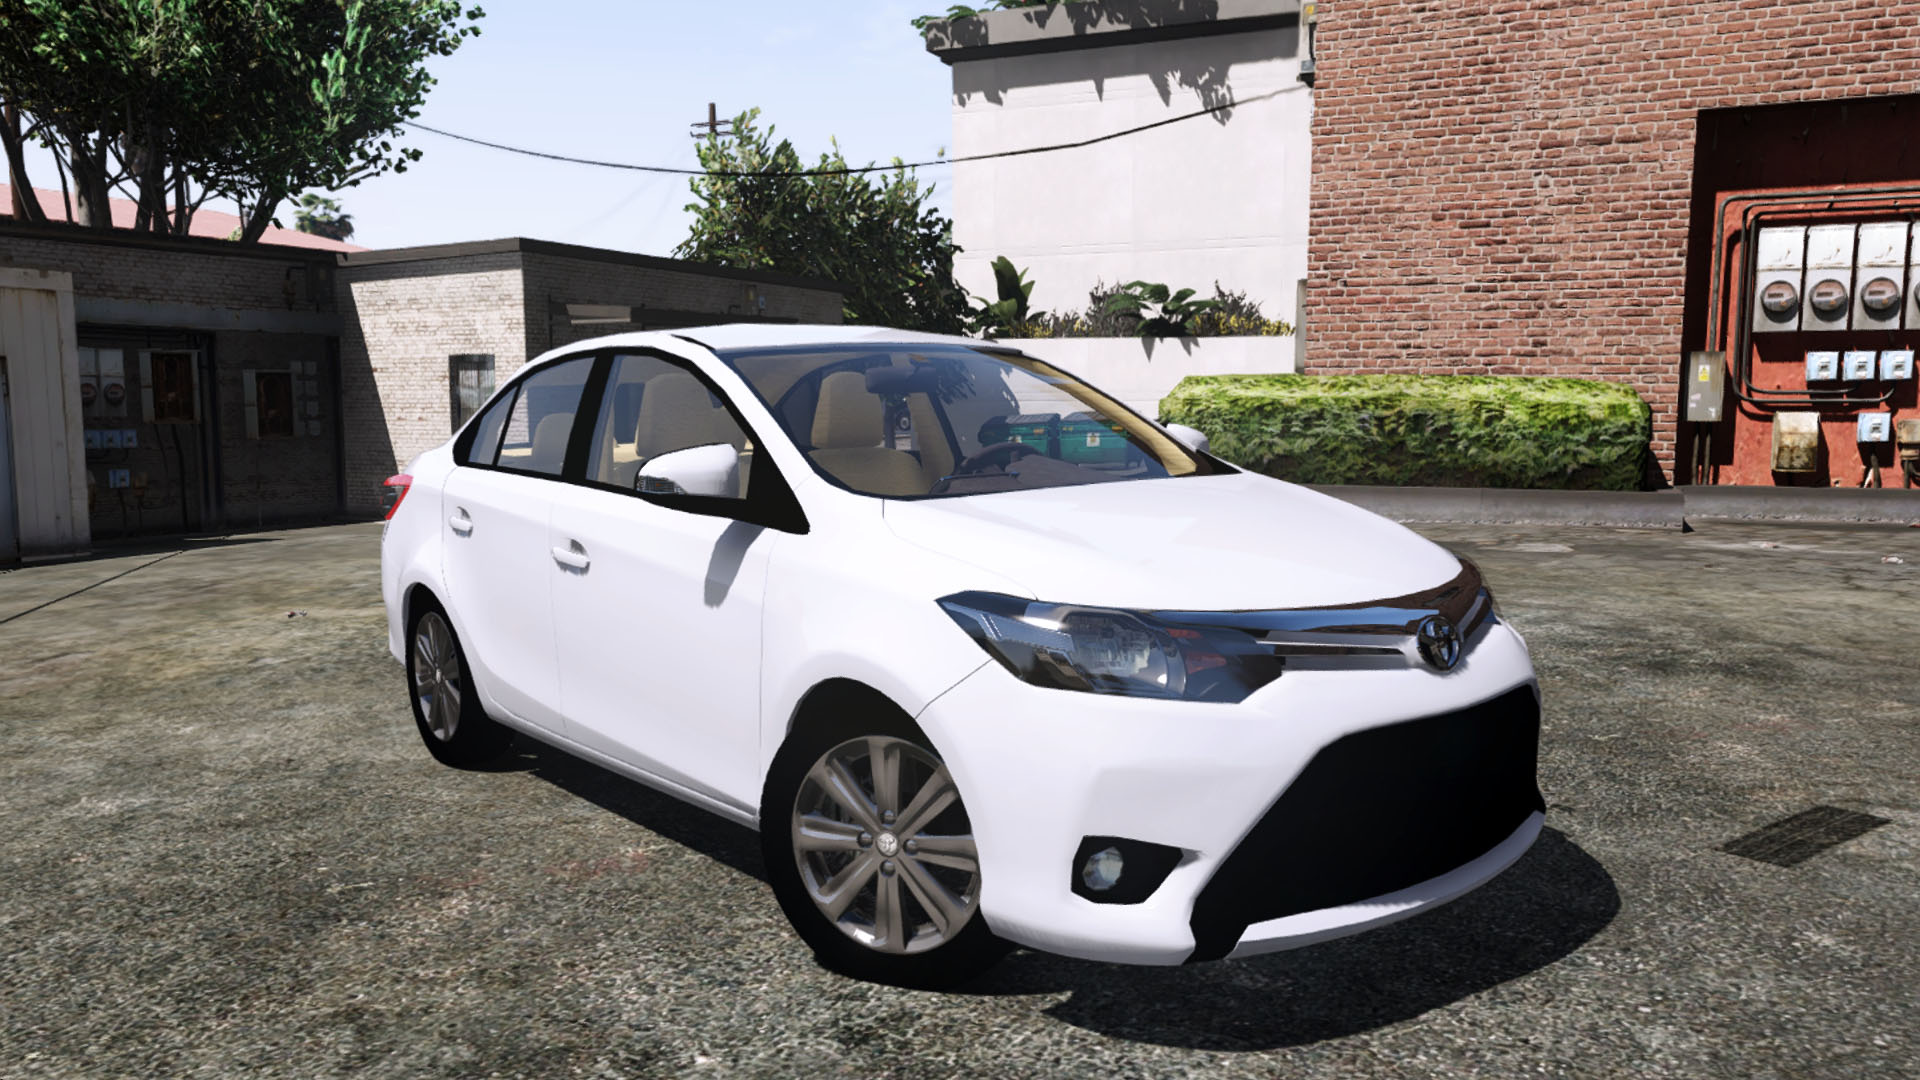 rent yaris features car in toyota a details dubai